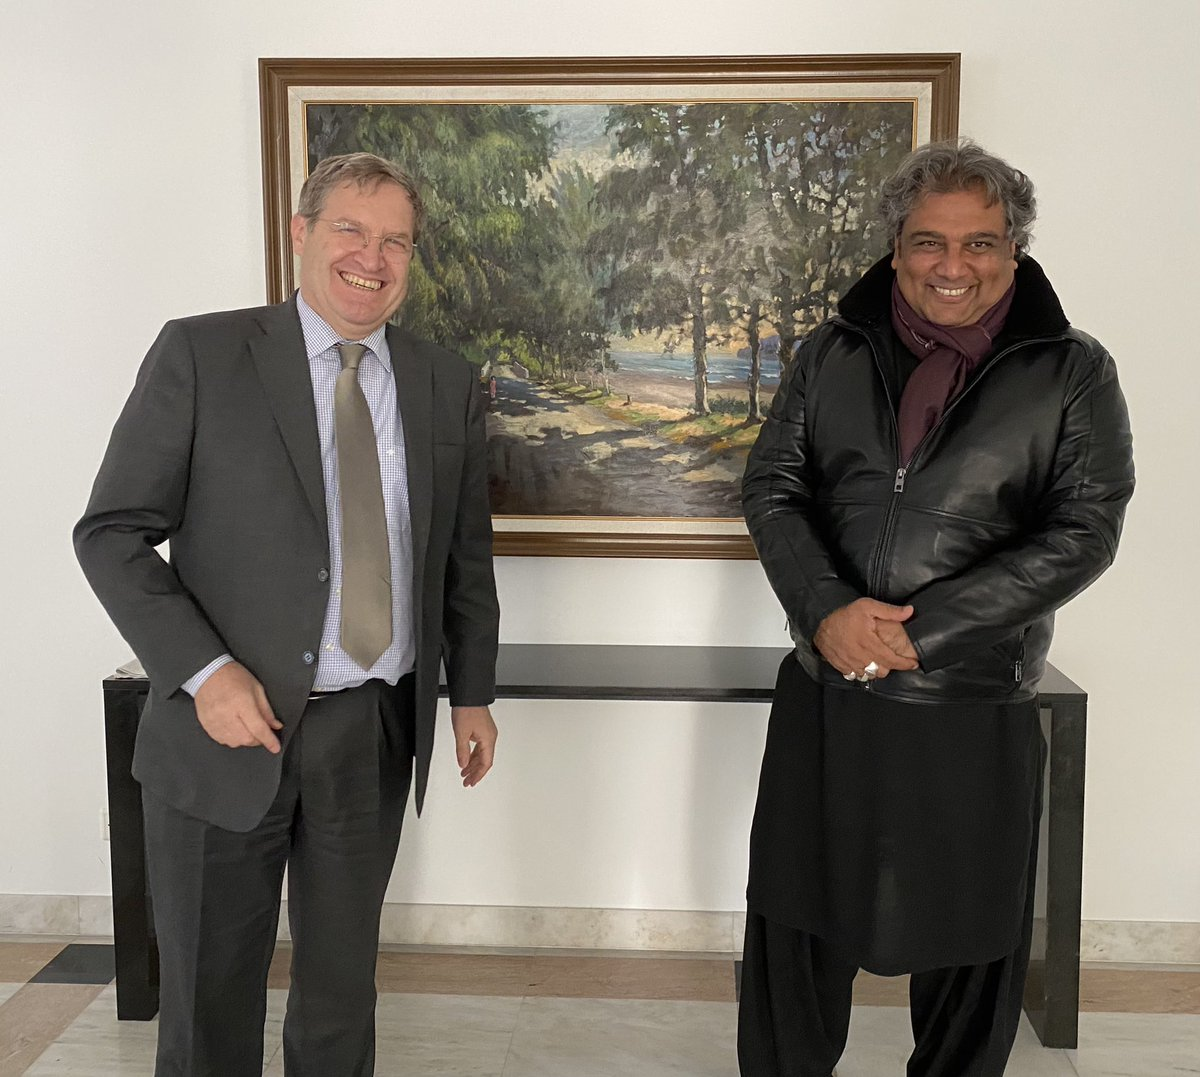 #KarachiPort #BlueEconomy Just before my first visit to #Karachi next week, it was very timely to host @AliHZaidiPTI, the Minister of Maritime Affairs 🇵🇰 at the Swiss Embassy in Islamabad today. Many🇨🇭companies are interested in the development of Karachi's infrastructure https://t.co/iMsepUQ2qg